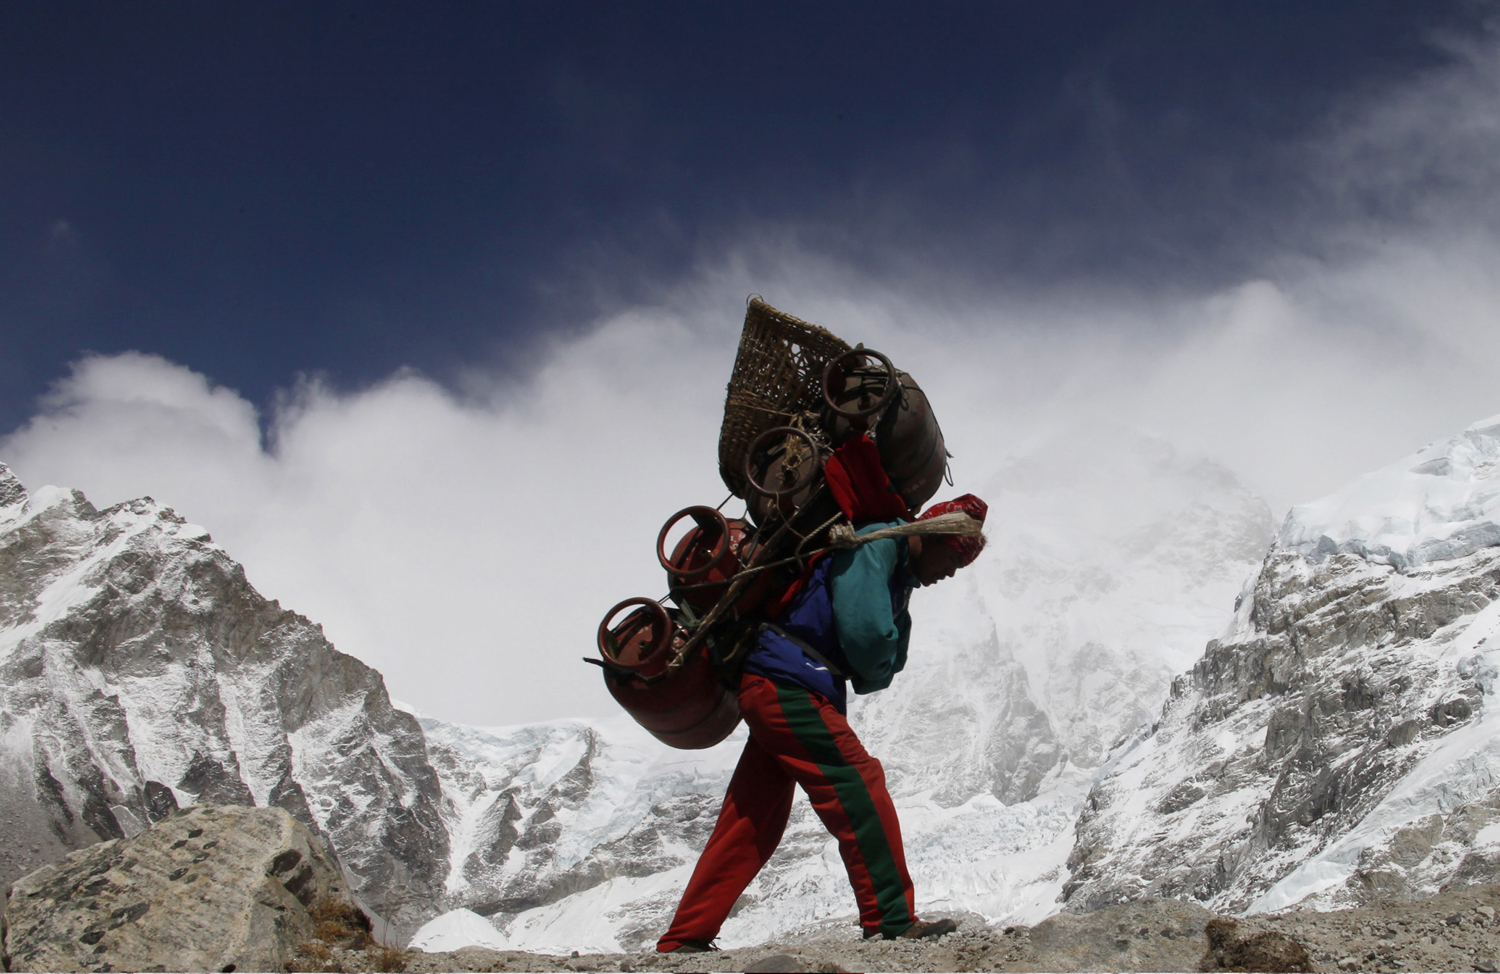 A Nepalese porter walks with his load from Everest base camp in Nepal on May 3, 2011